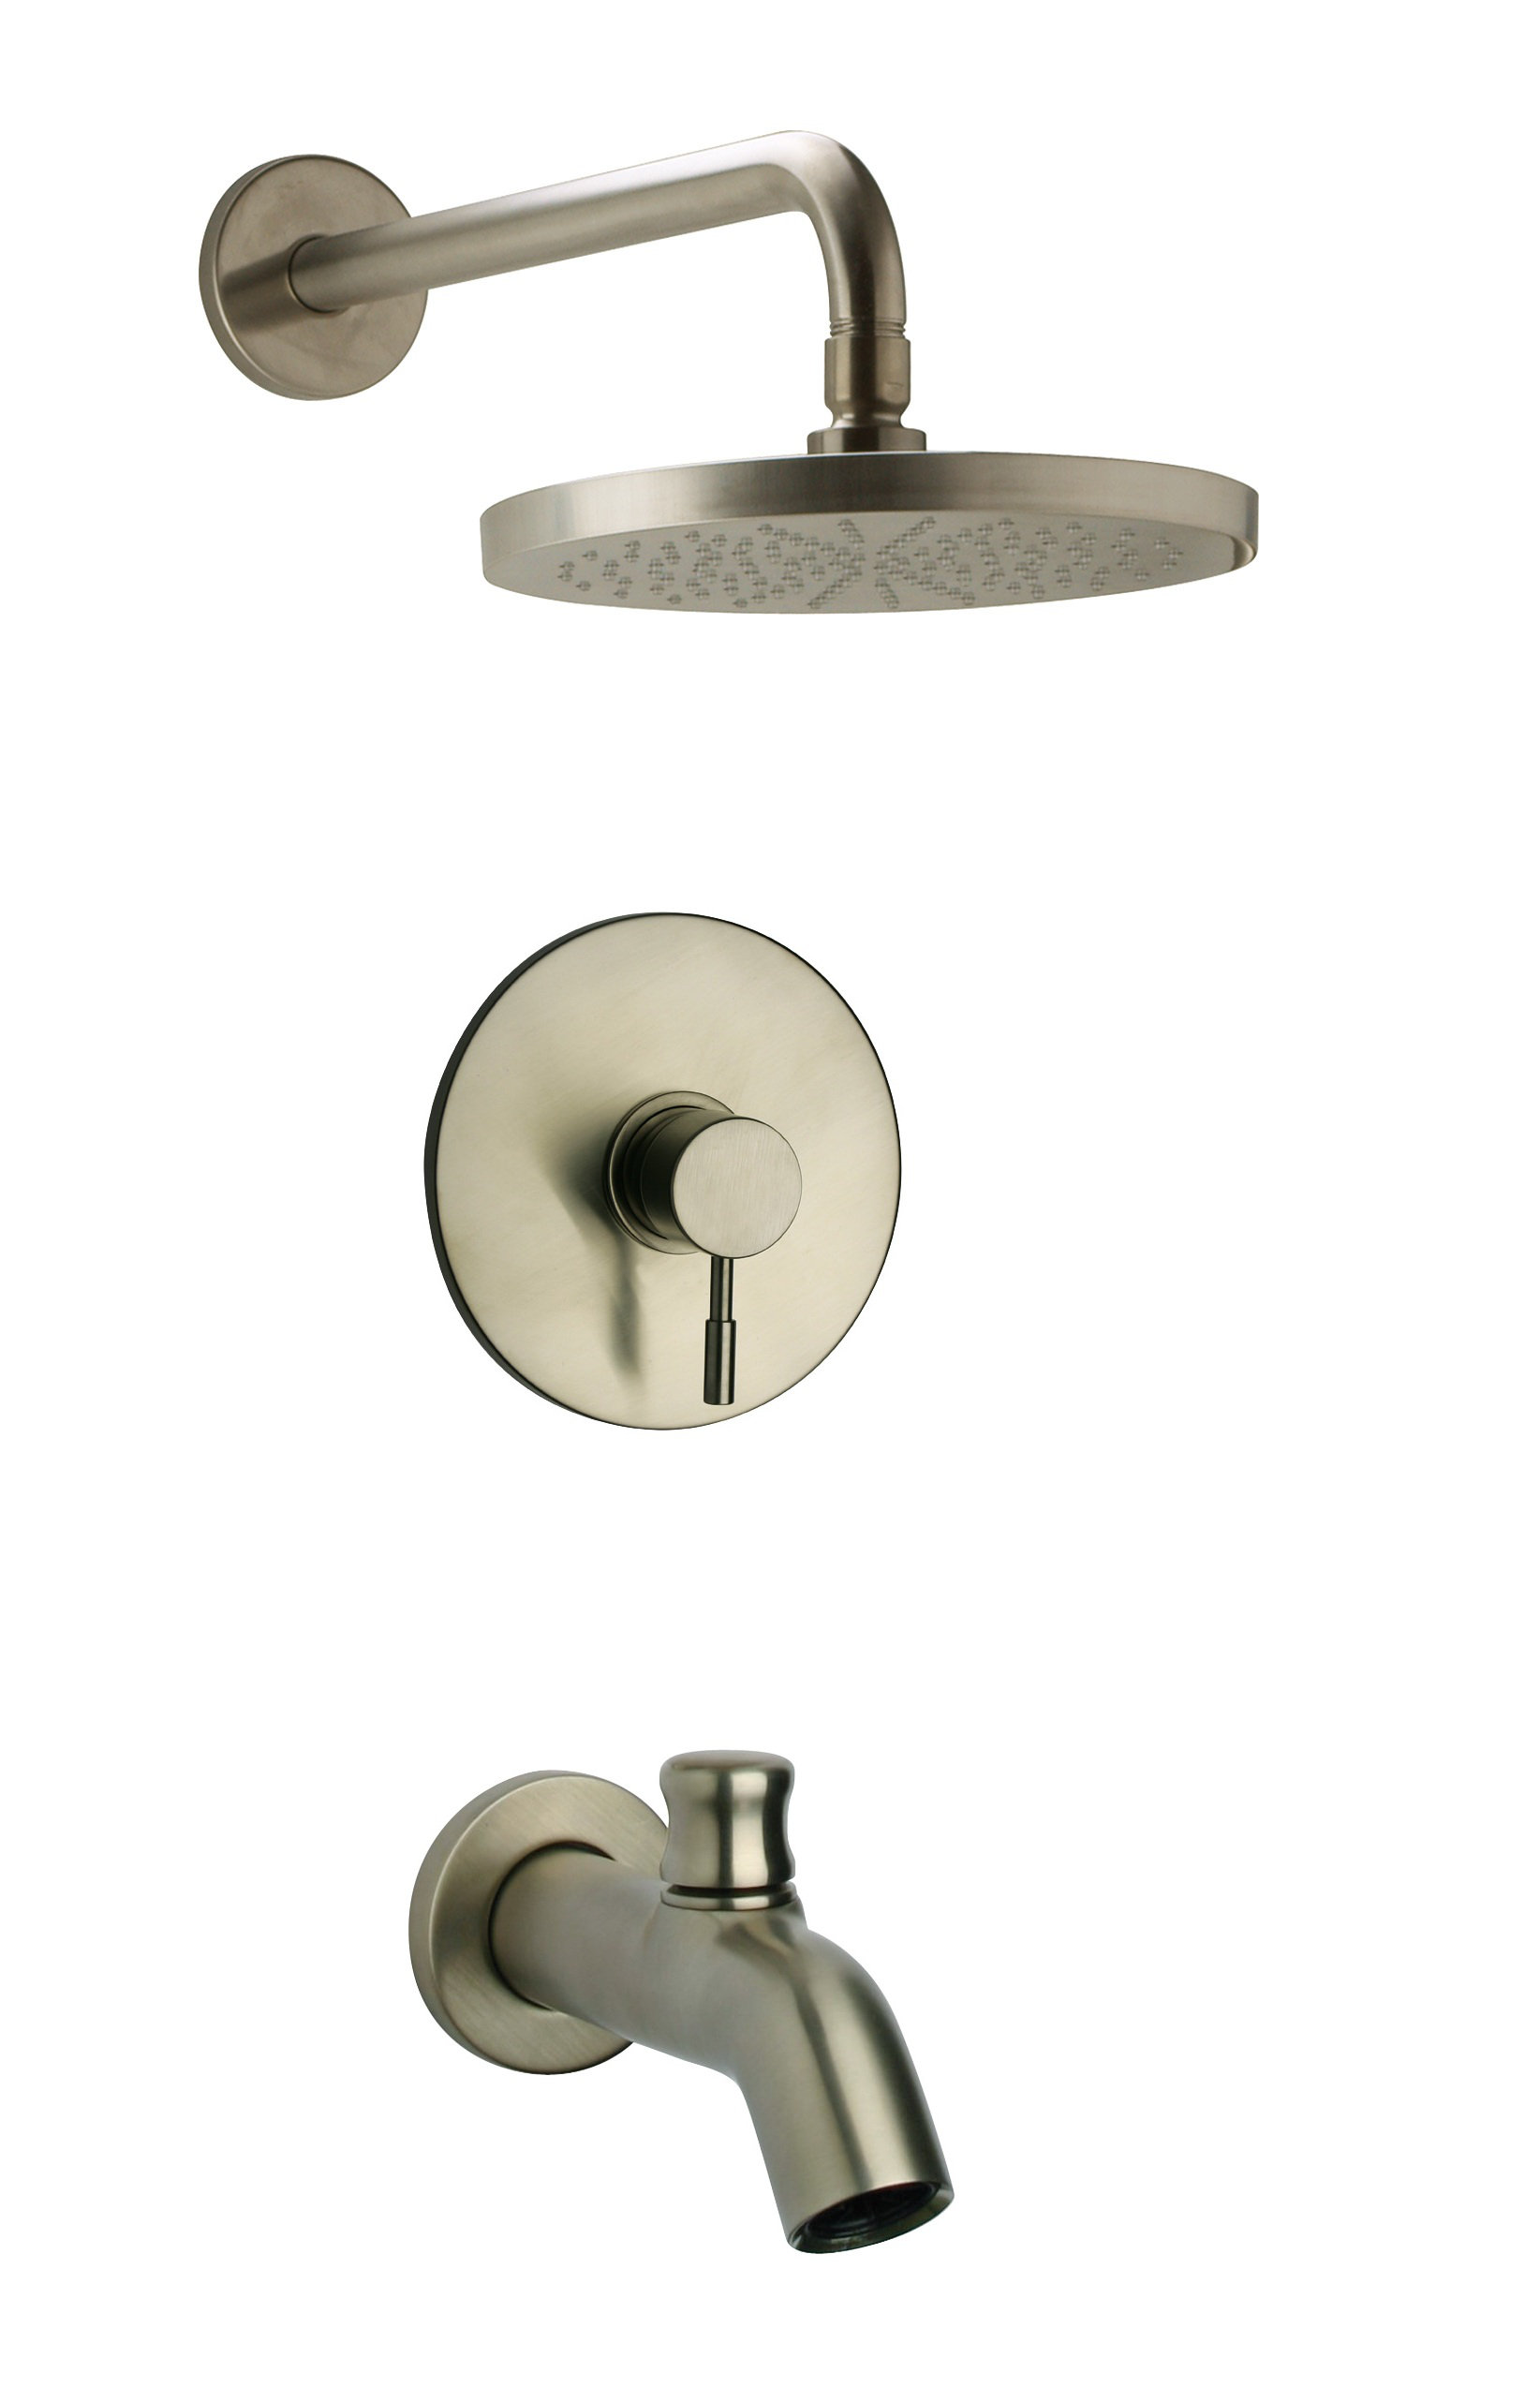 Pressure Balance Shower Set in Brushed Nickel Finish